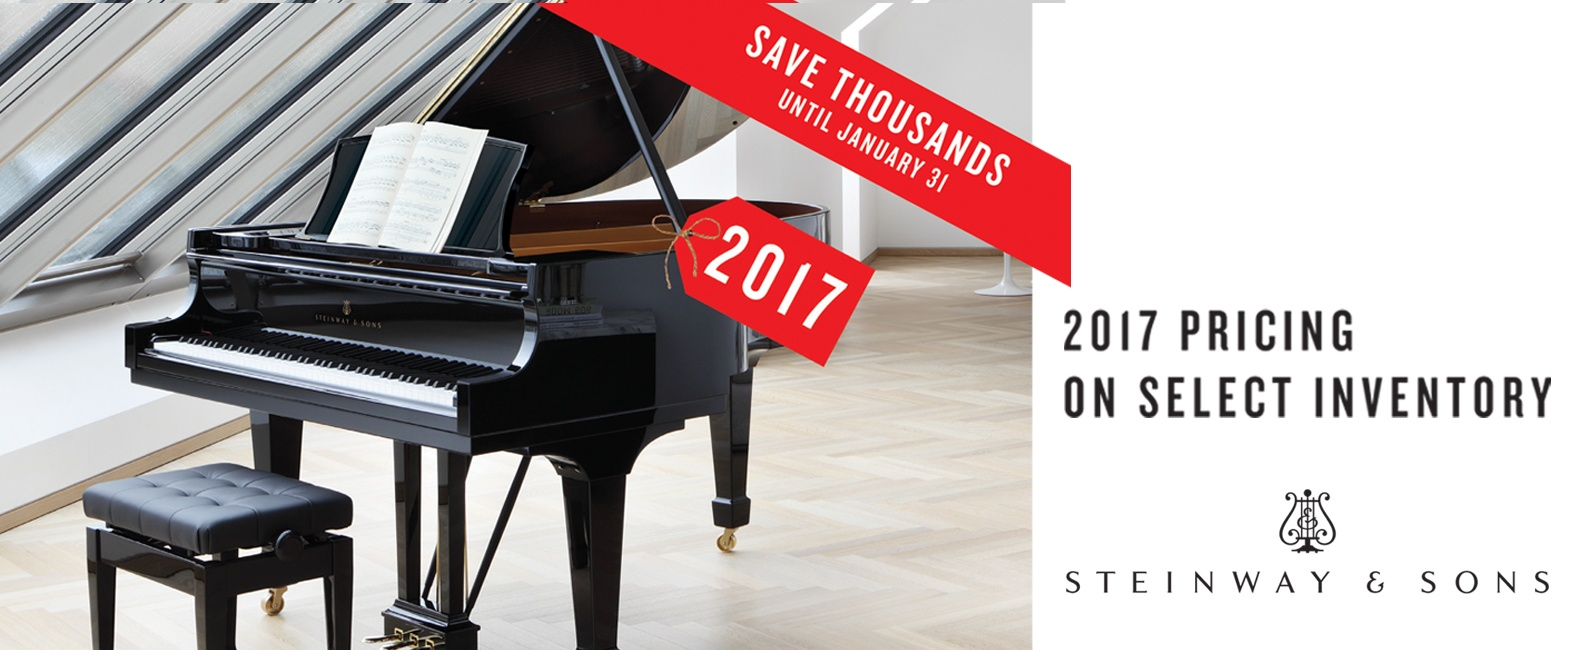 Steinway Pianos at Heid Music